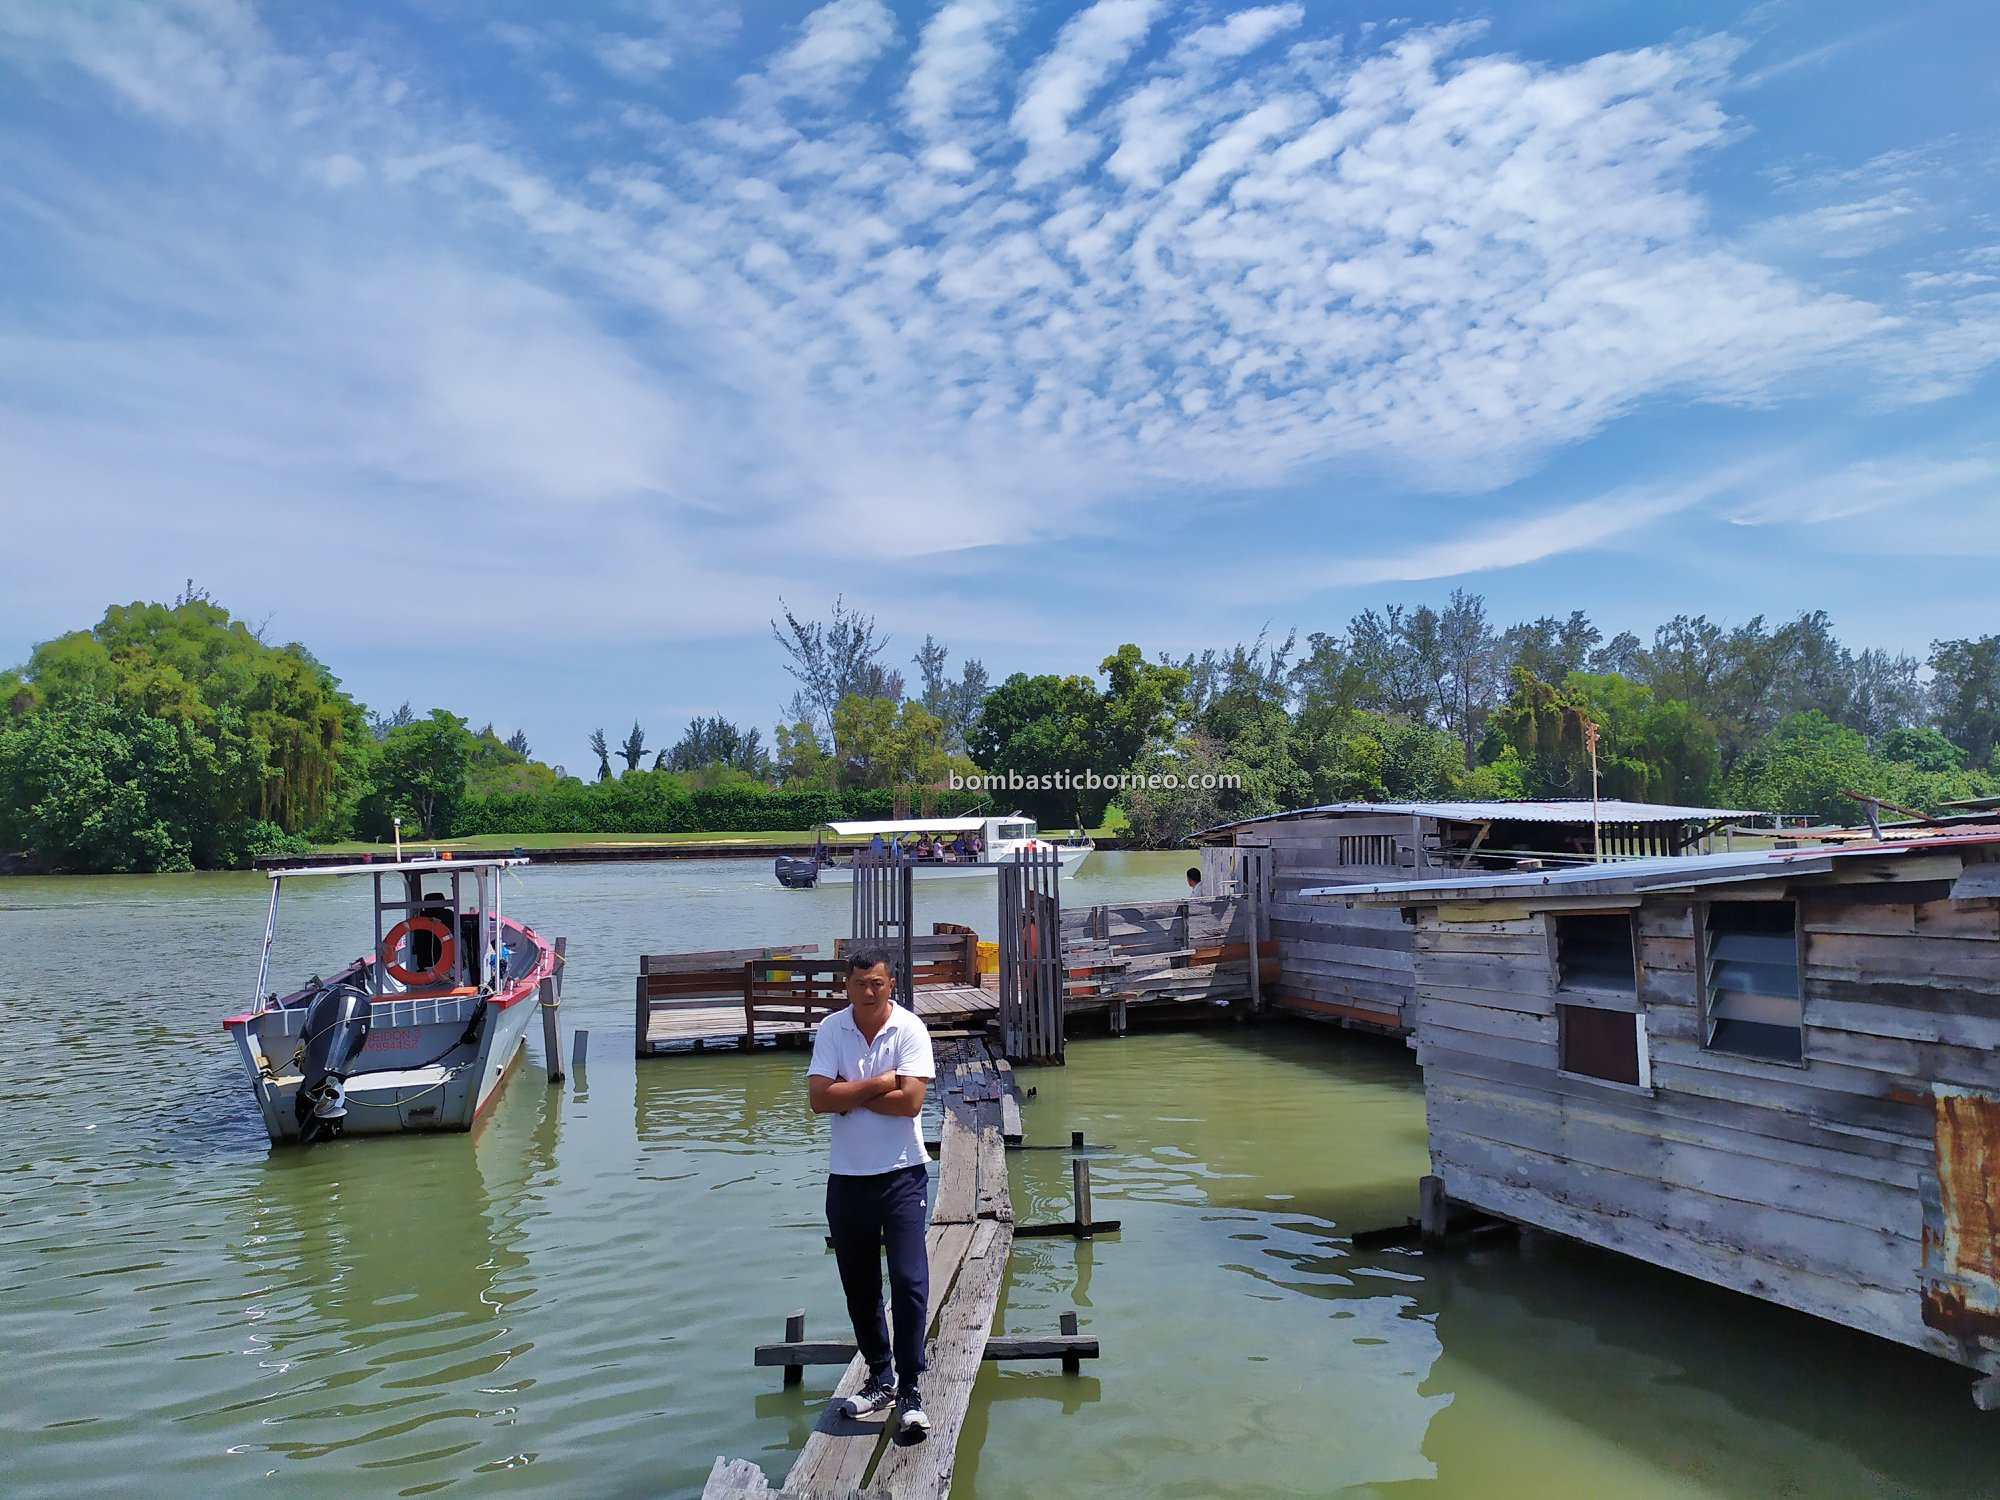 backpackers, destination, Discover Miri City, exploration, rumah terapung. Miri waterfront, Seahorse, tourist attraction, travel guide, 穿越婆罗洲游踪, 马来西亚砂拉越, 美里水上之家